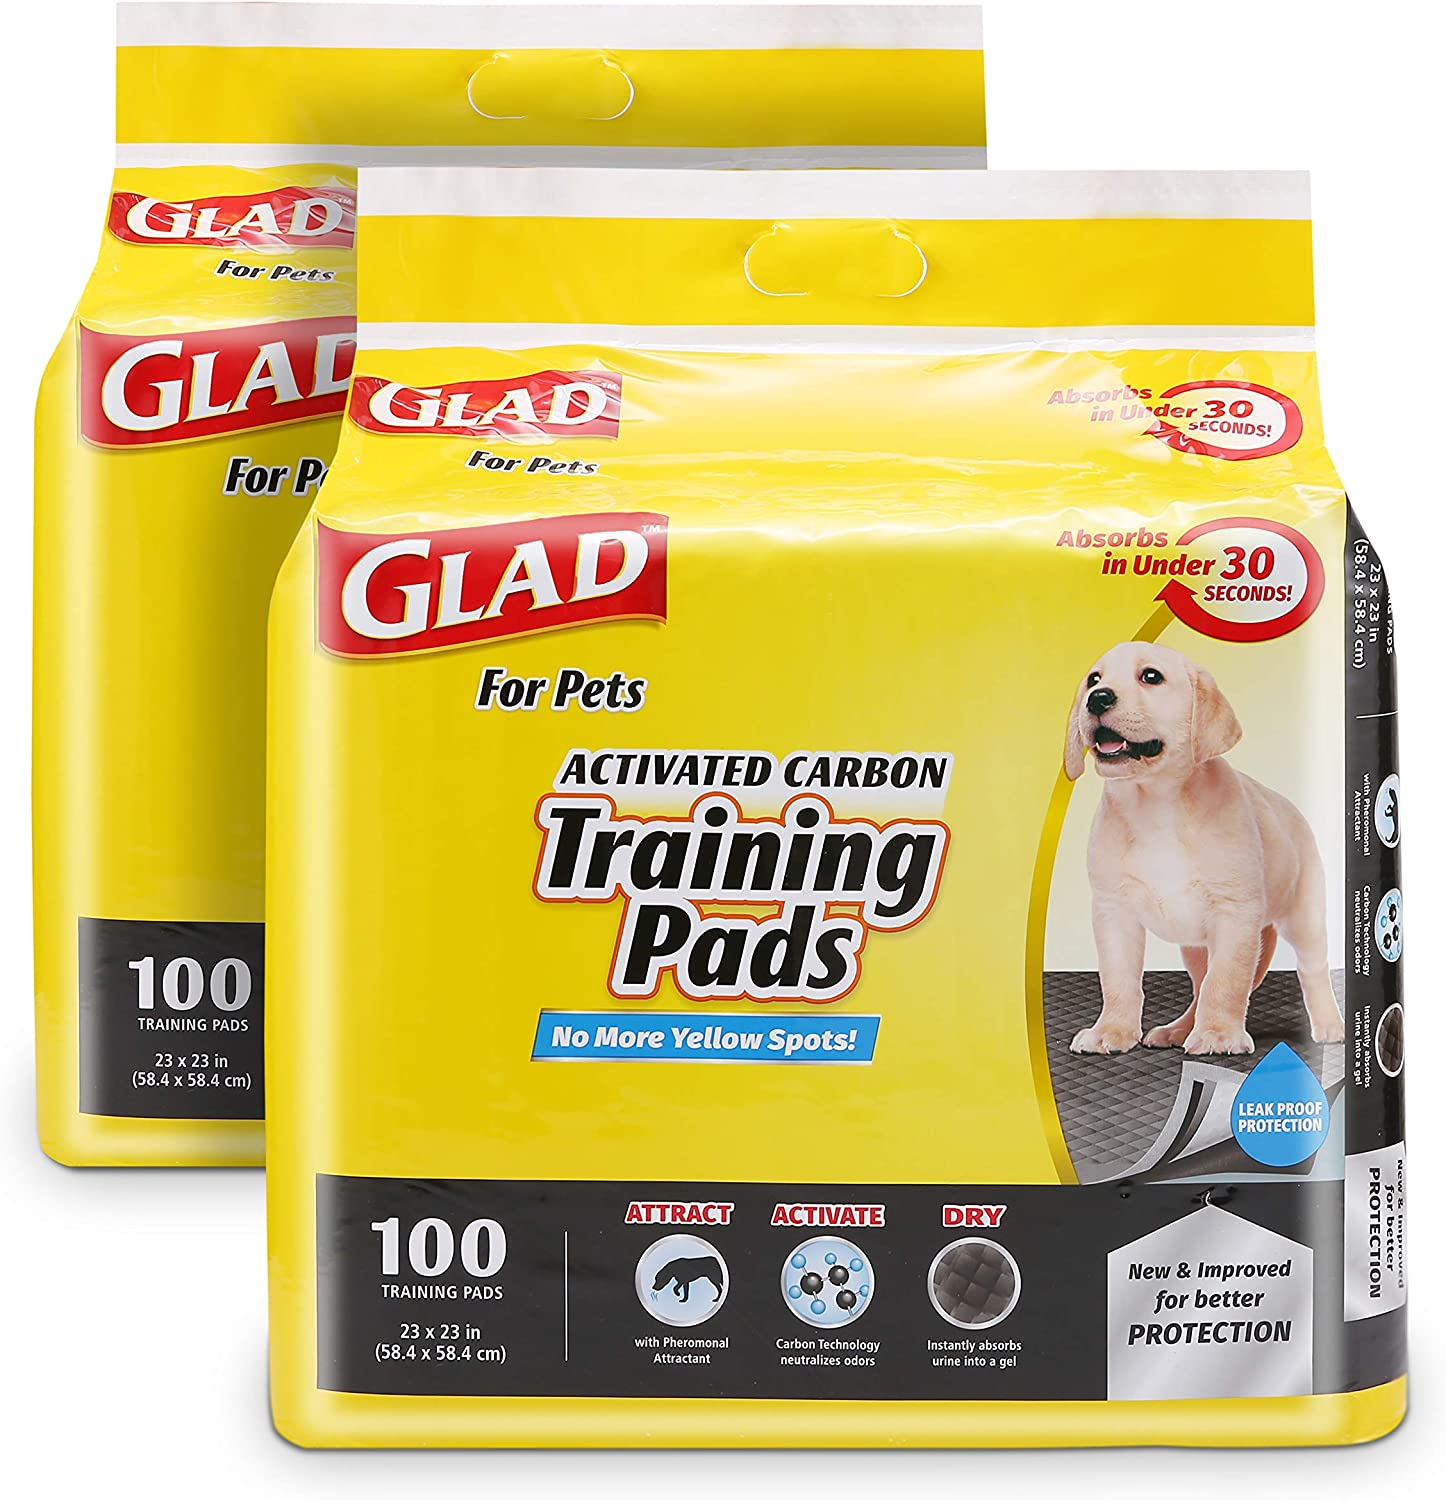 Sale Special Price Glad for Pets Black Charcoal Pot 35% OFF Puppy Improved Pads-New